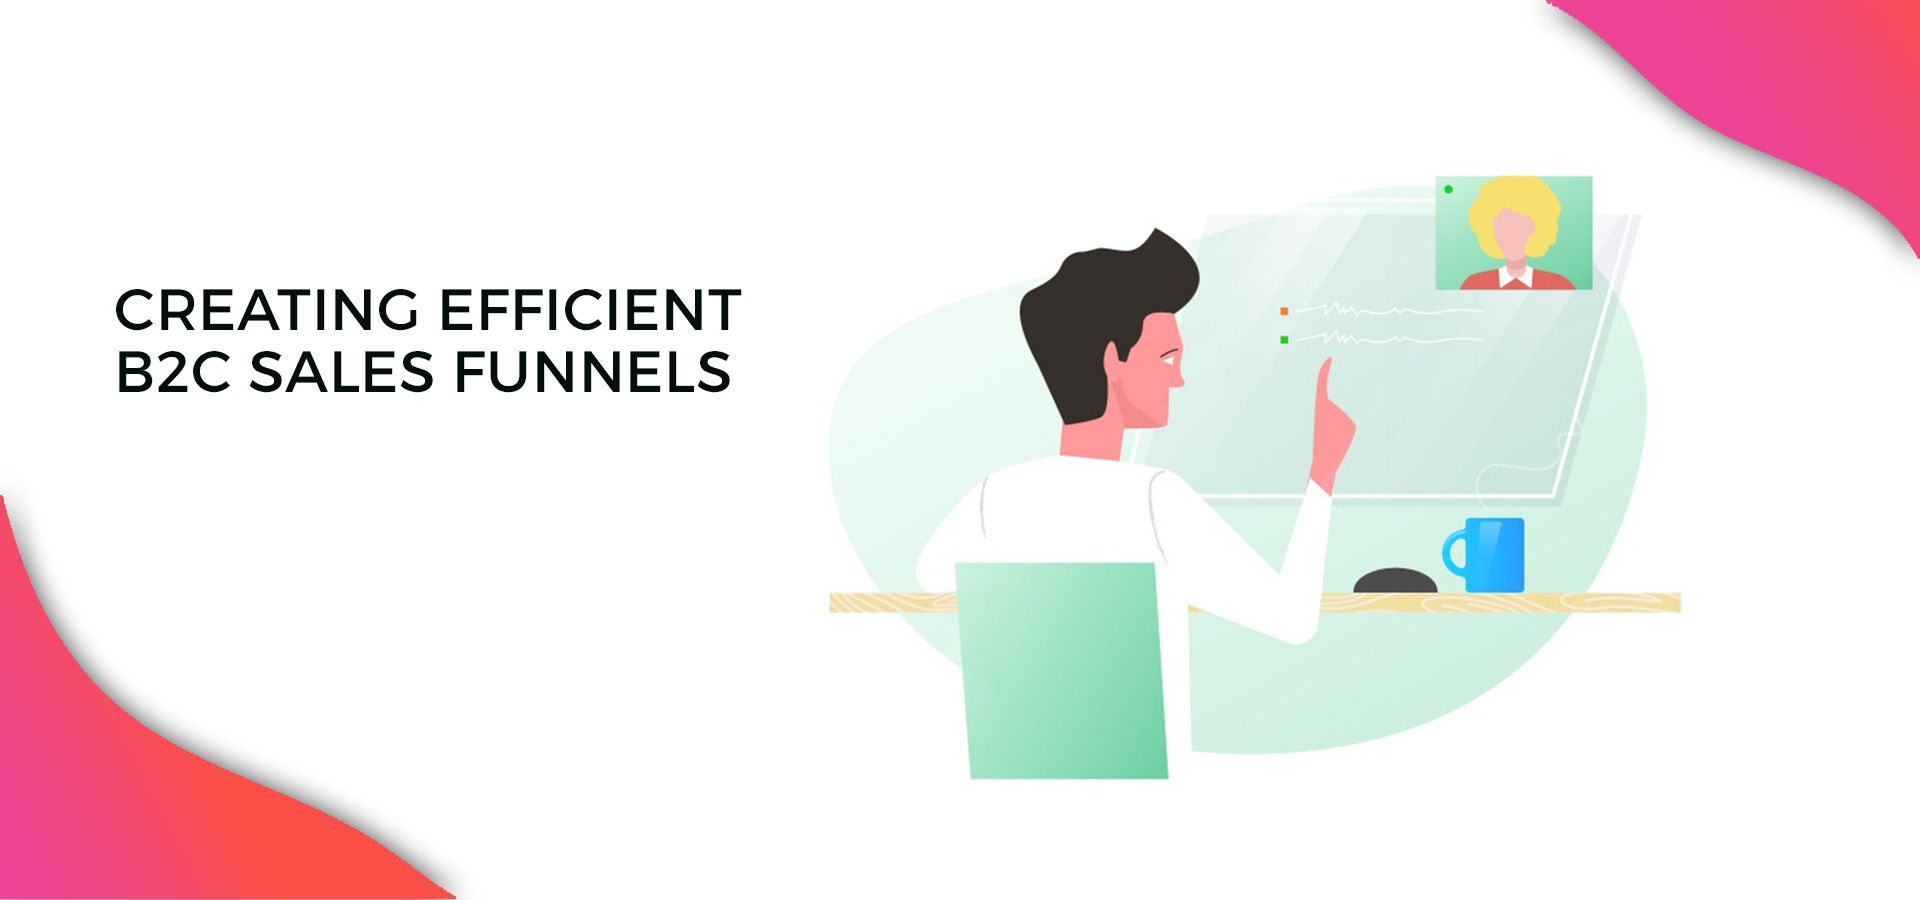 Creating Efficient B2C Sales Funnels using Buyer Persona